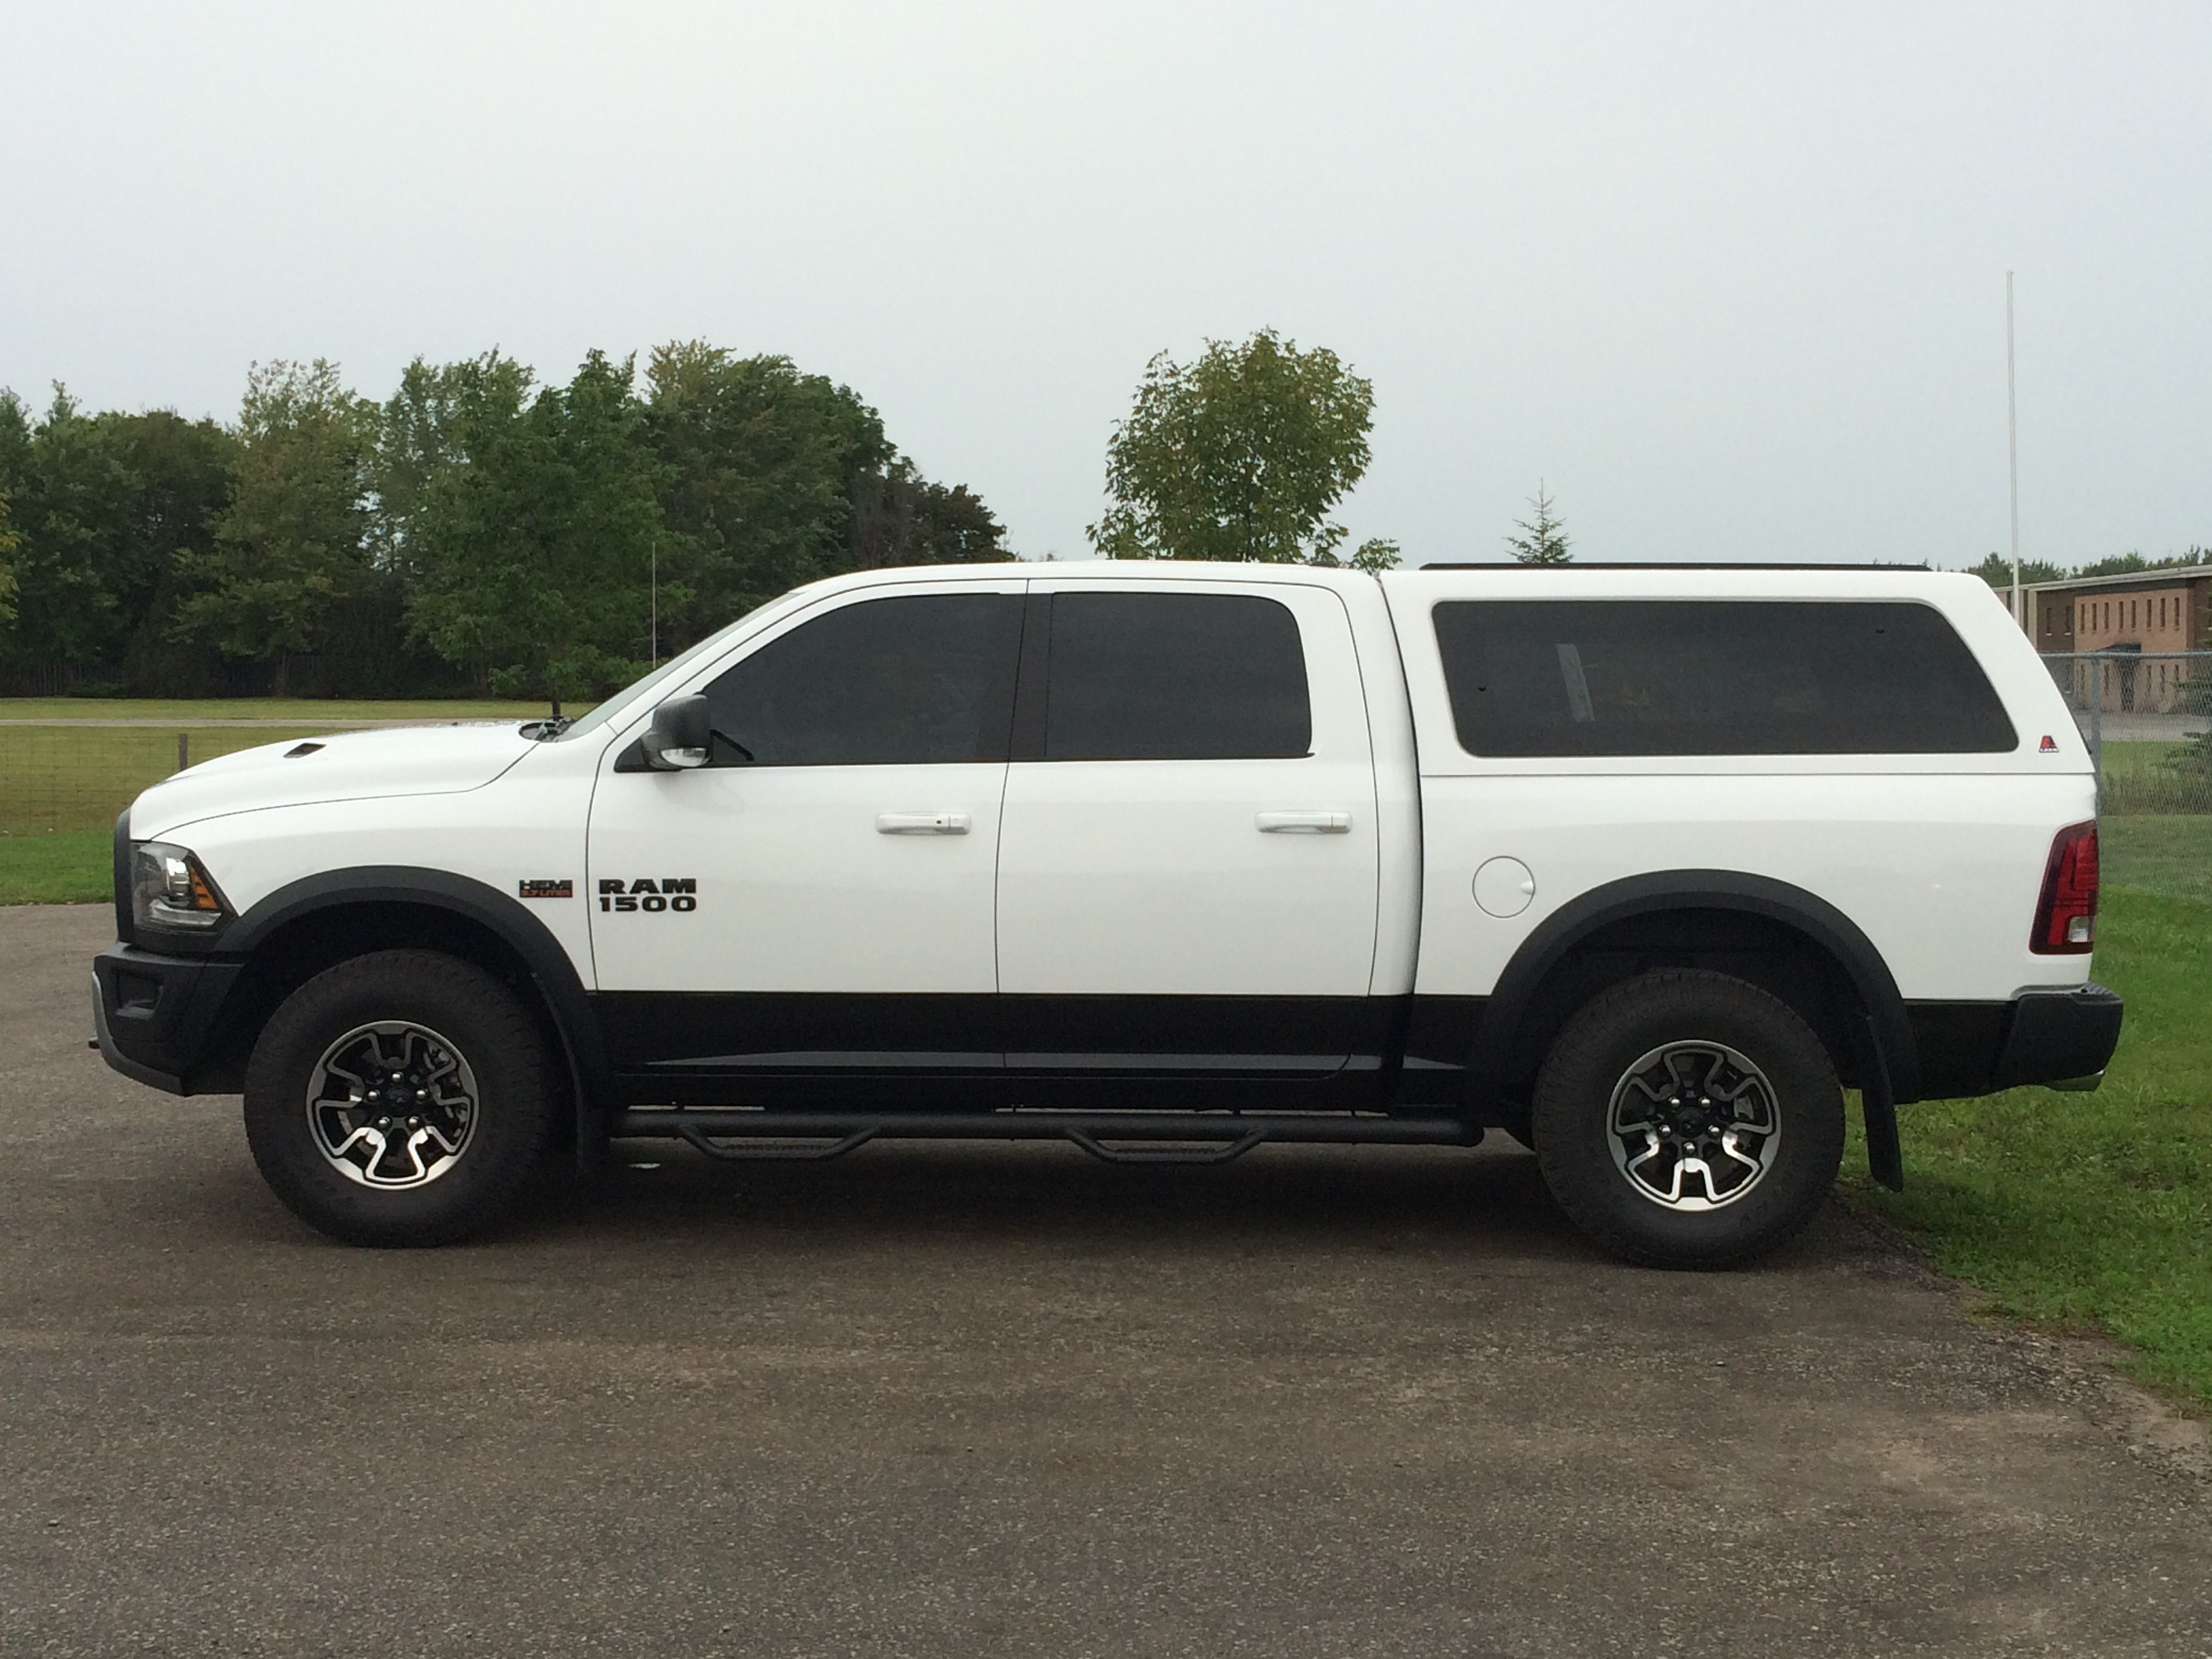 Dodge Ram 3500 Camper >> Camper shell for the Rebel? | Ram Rebel Forum